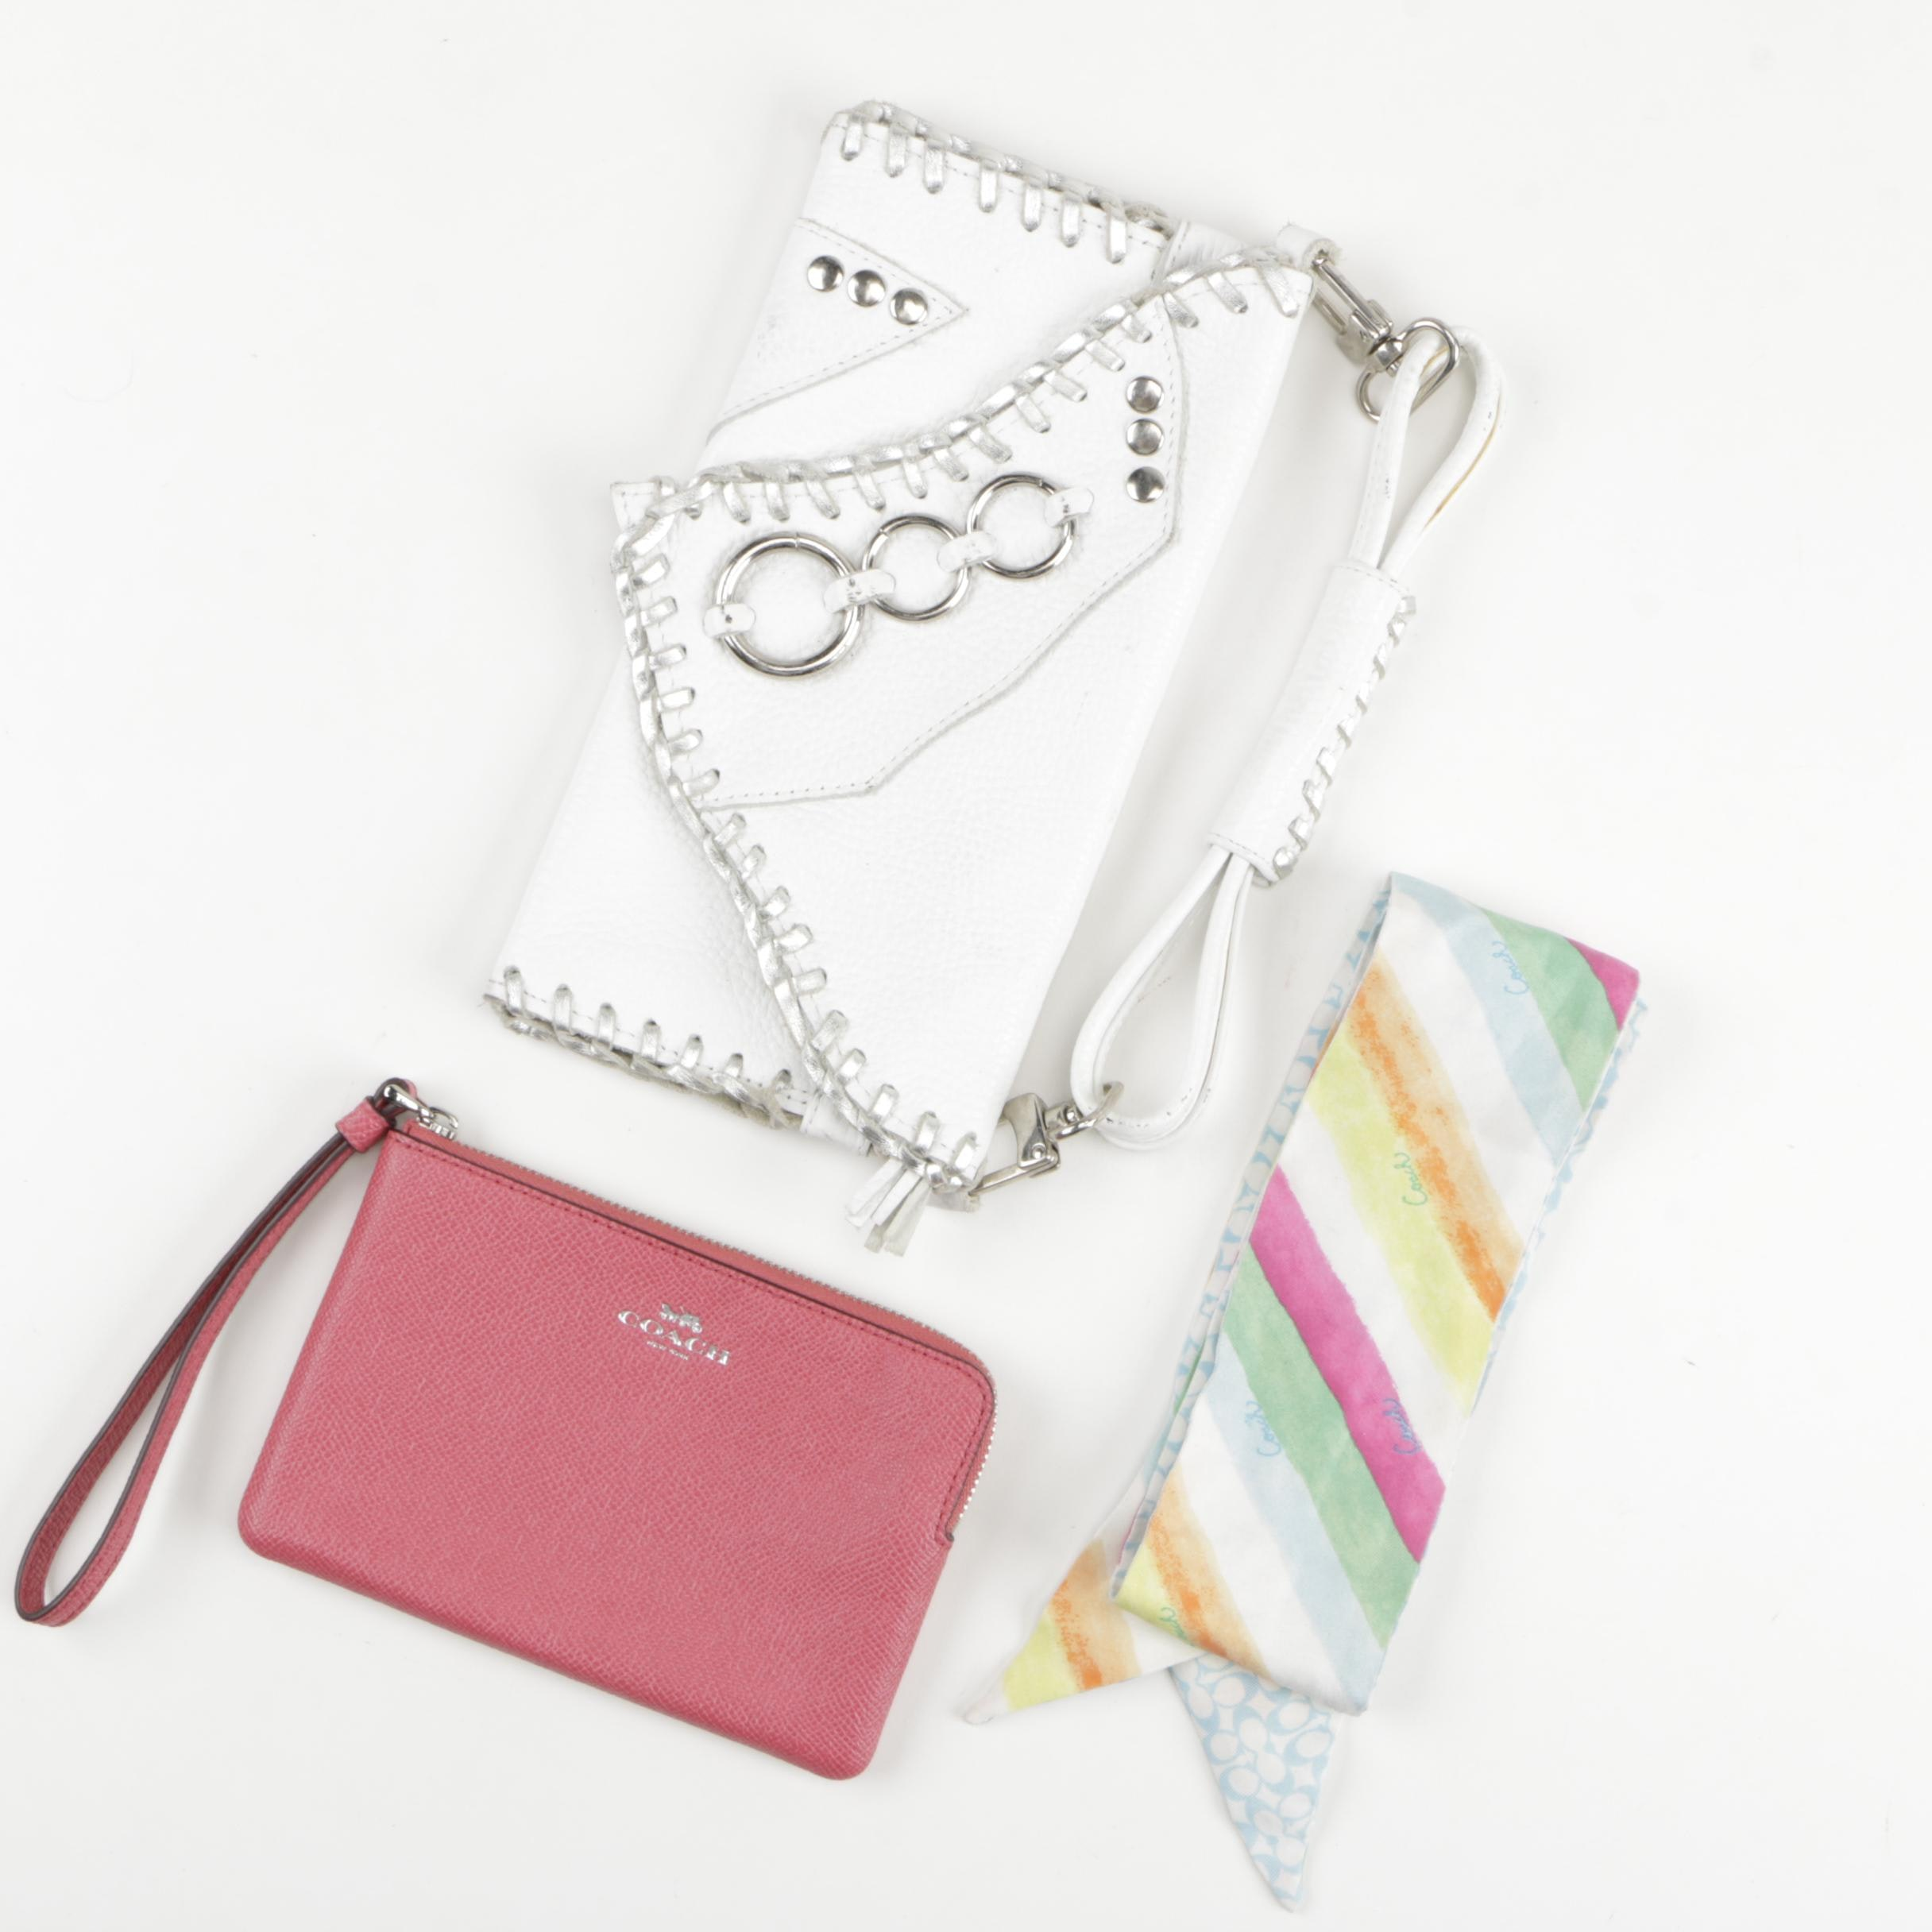 Wristlets and a Scarf Including Coach